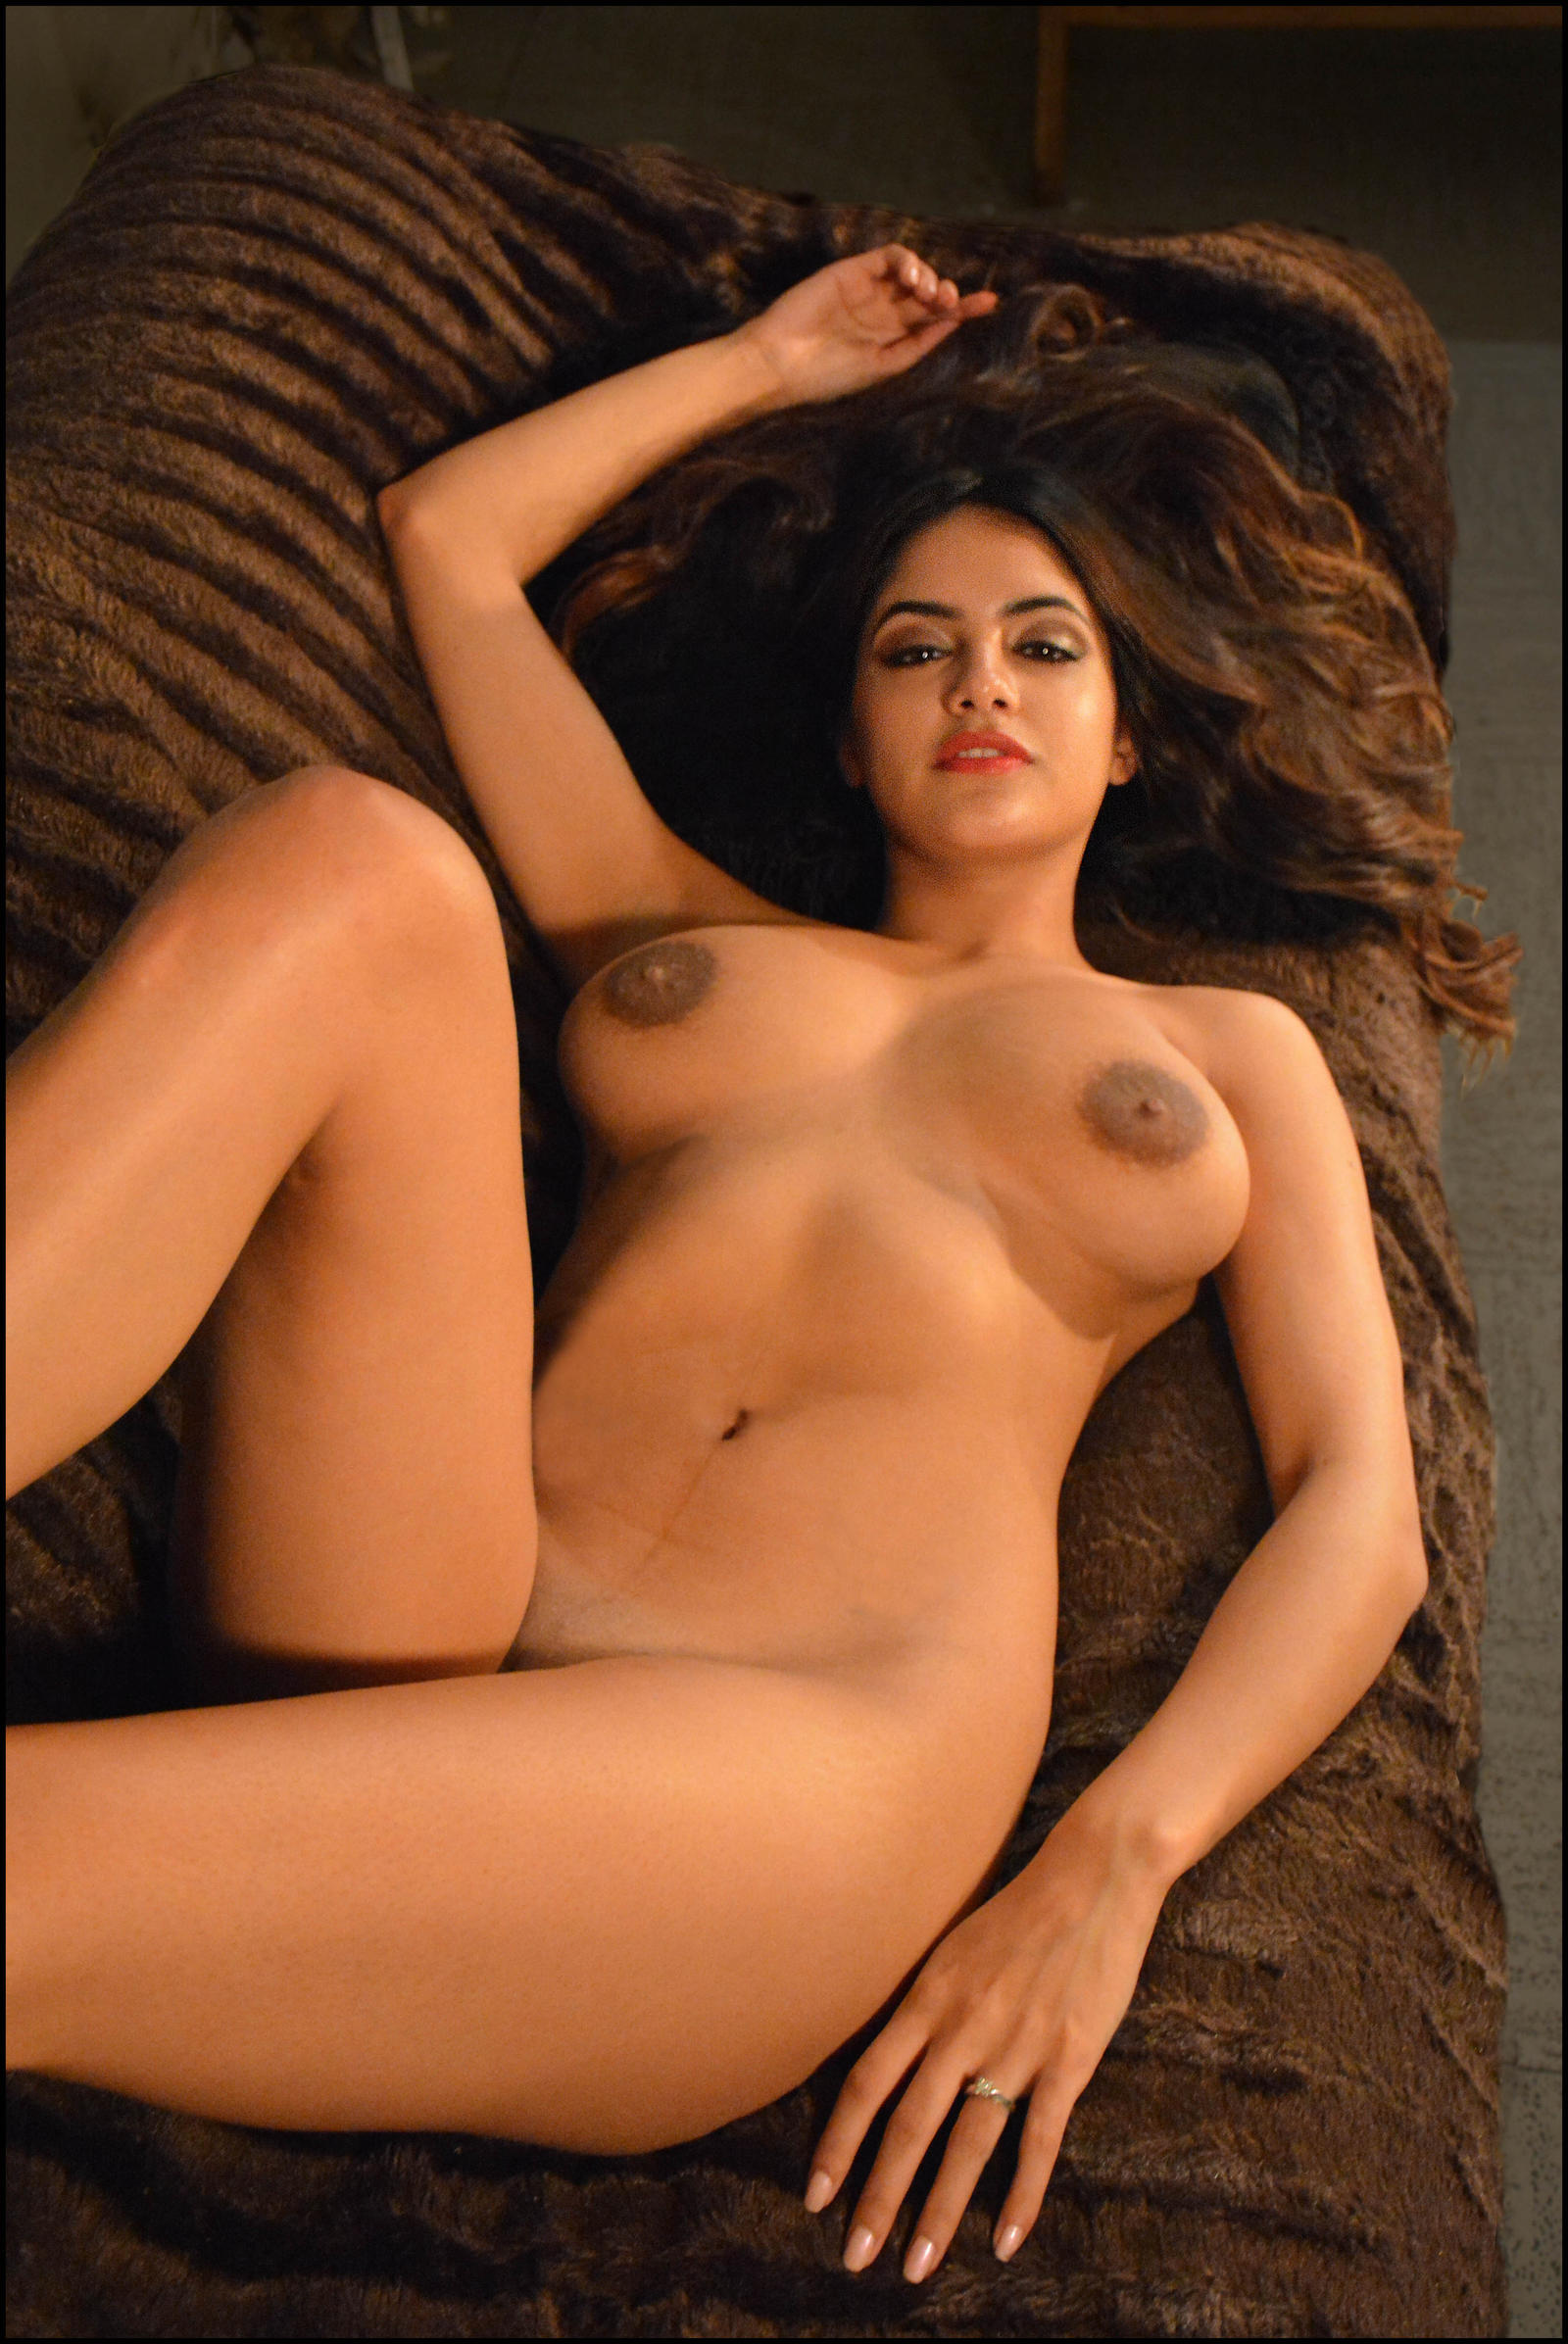 Beautiful indian shanaya babe stripping out of her lingerie